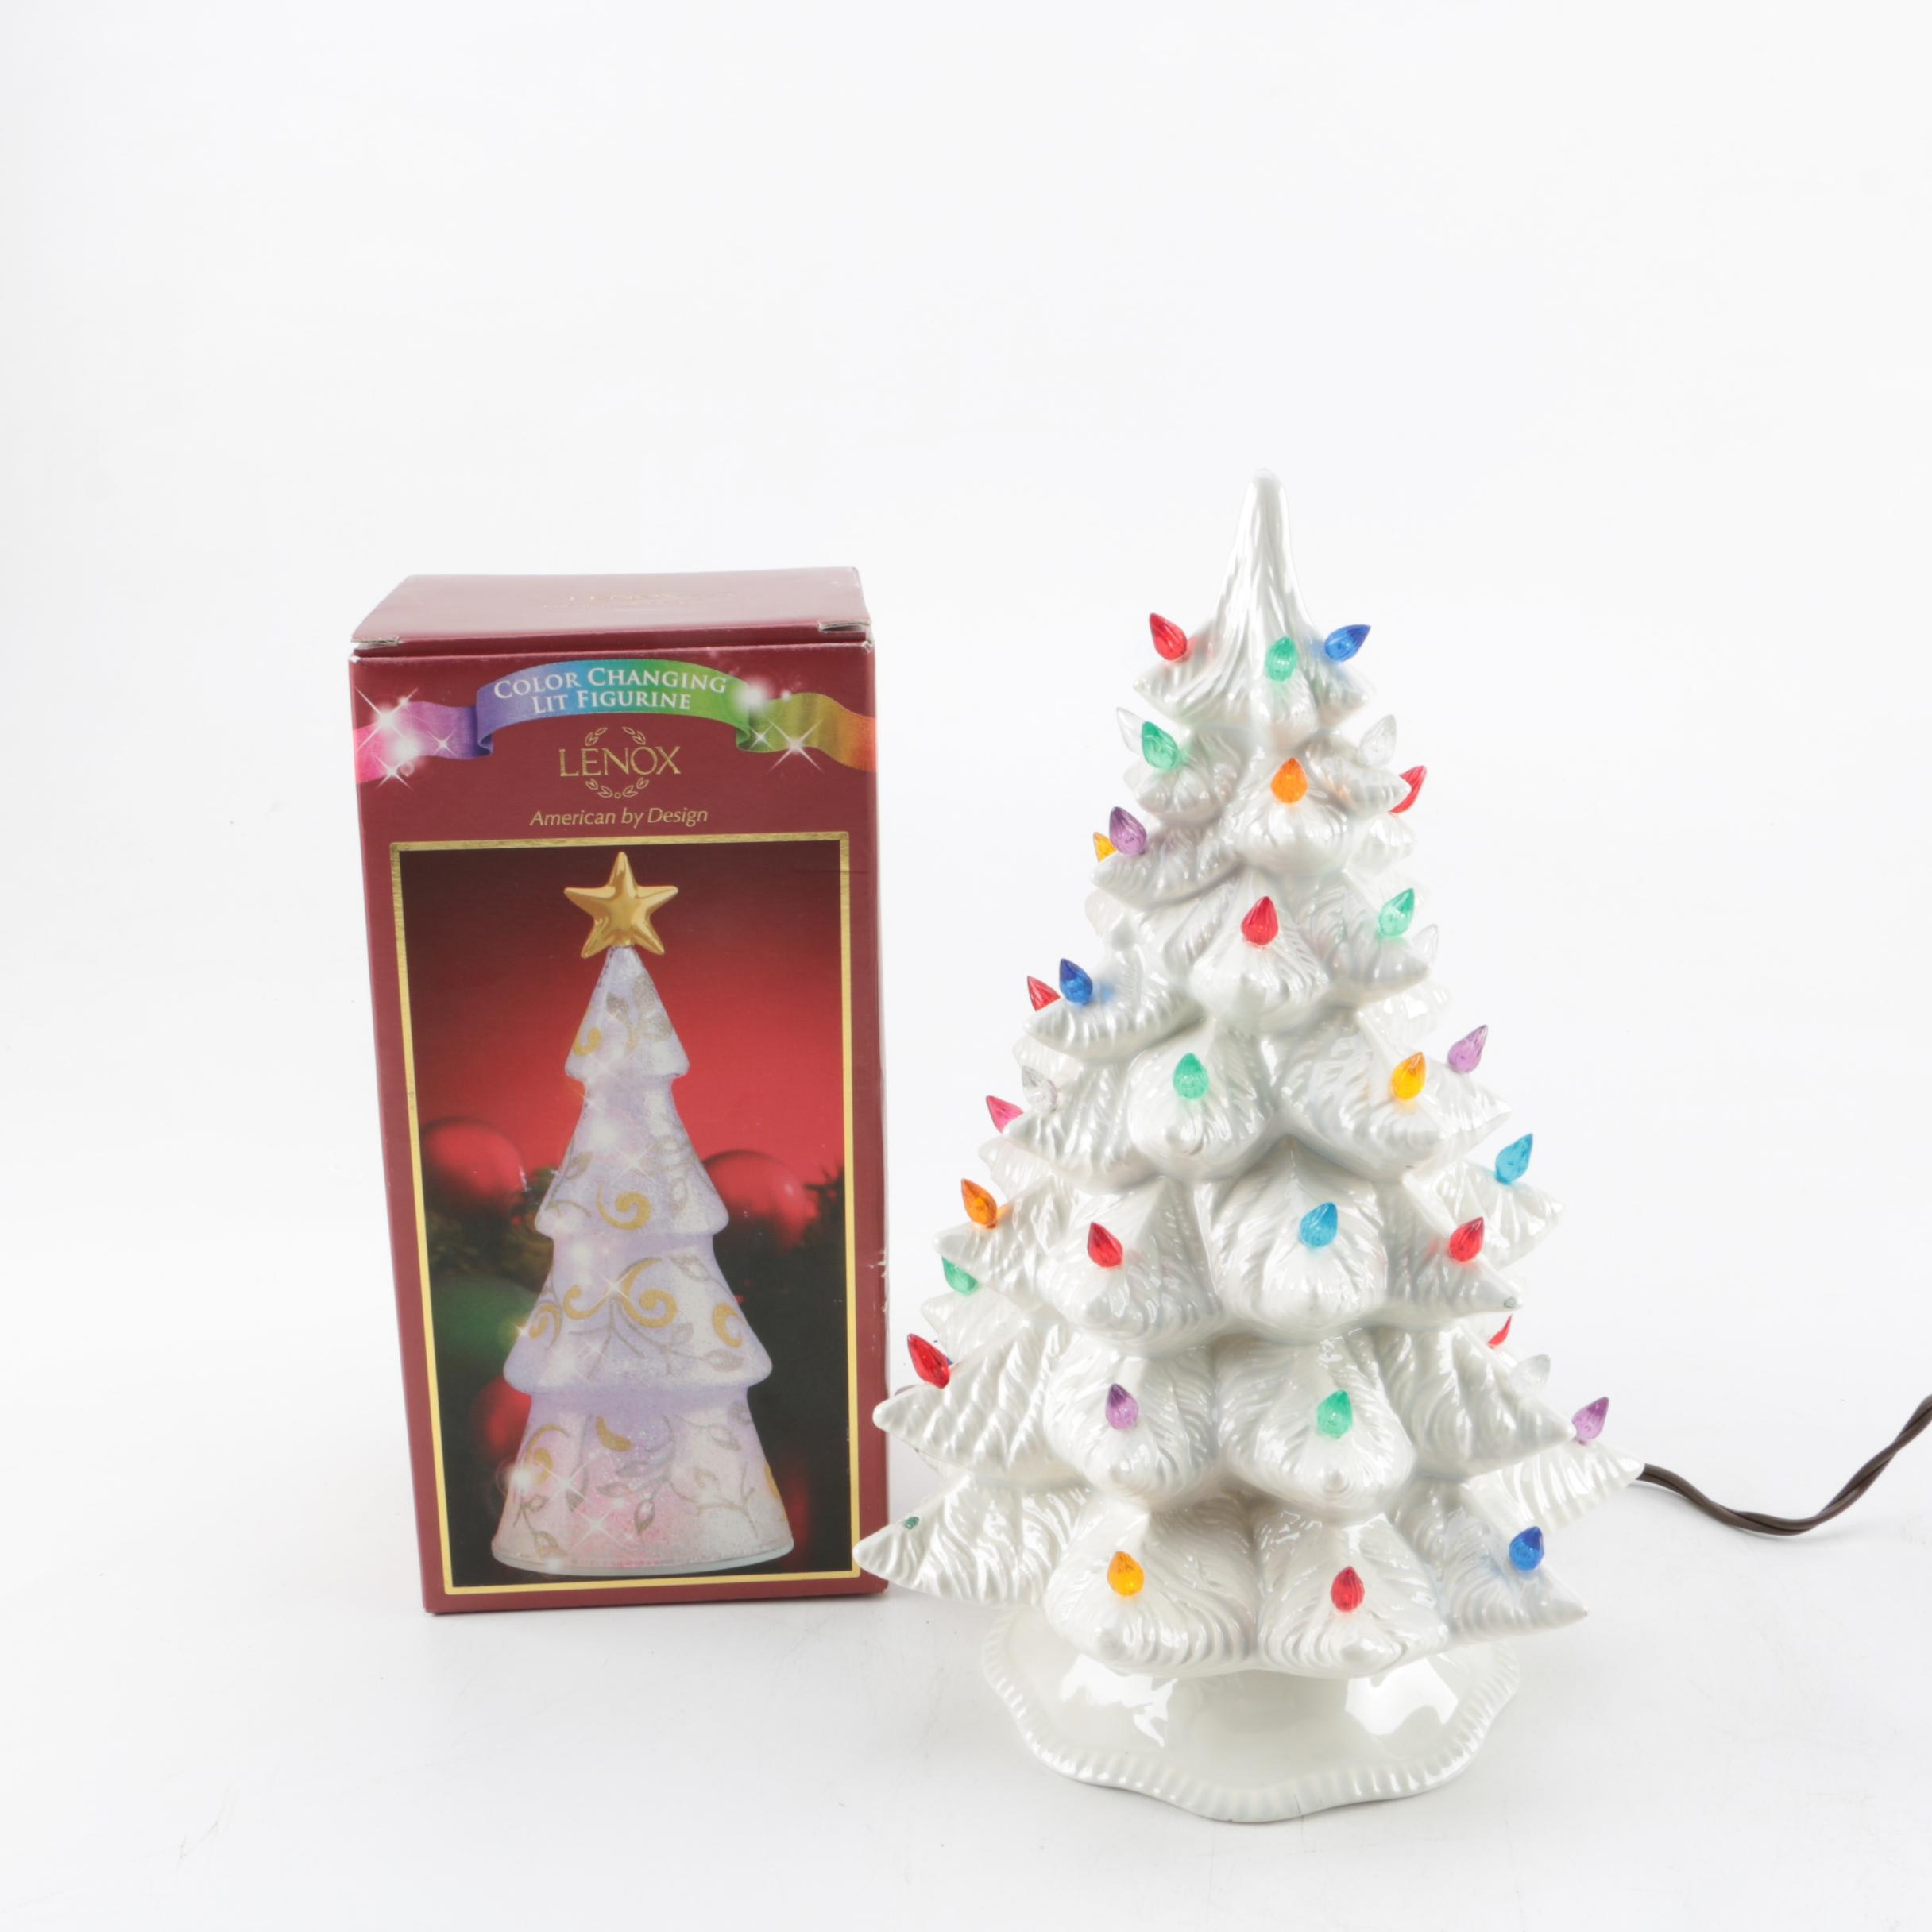 Vintage White Lighted Ceramic Christmas Tree and Lenox Tree